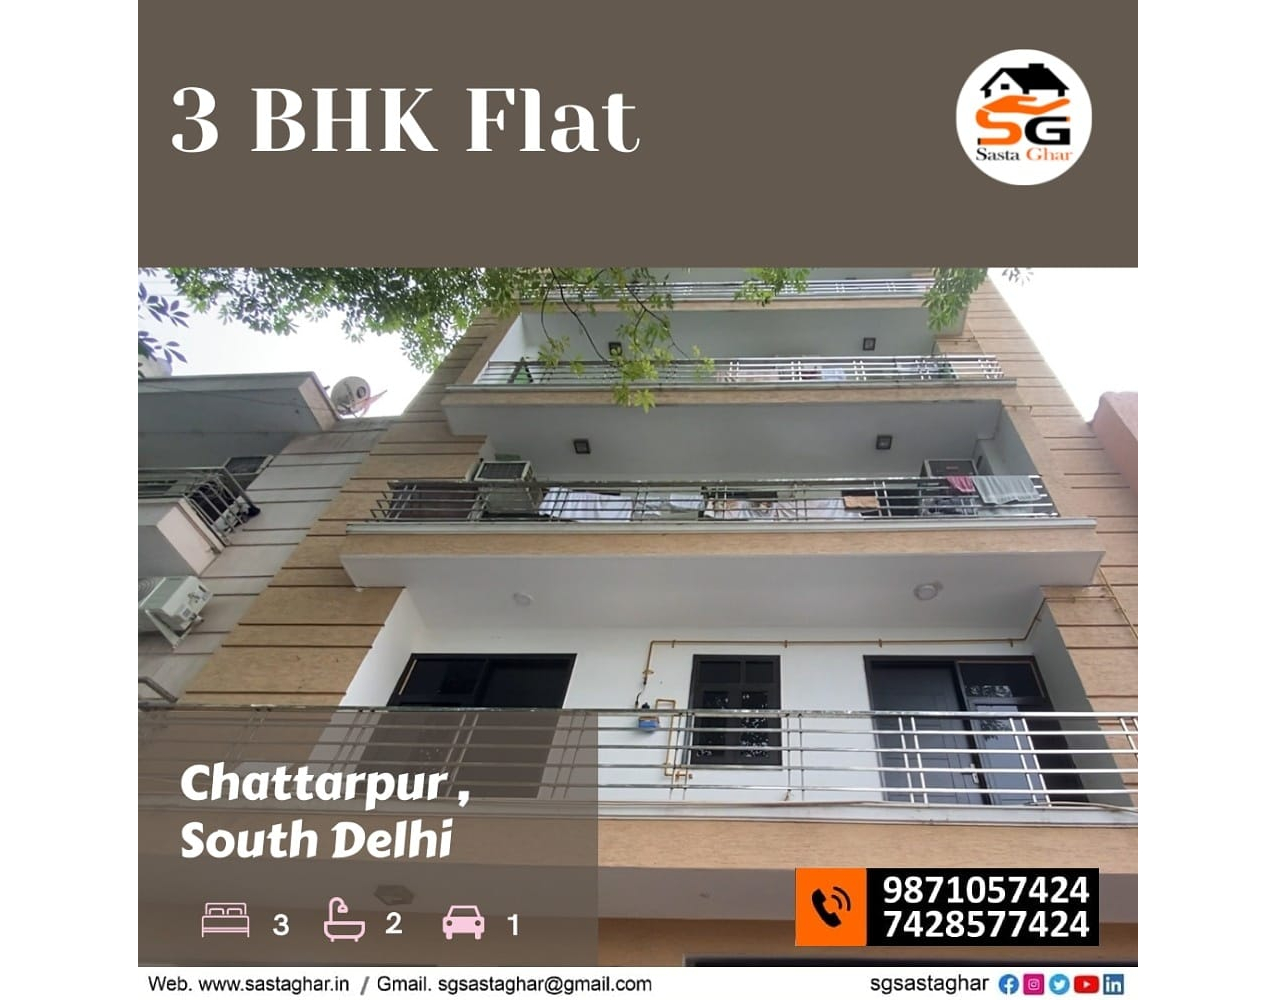 3 BHK flats in Chattarpur Gated Compound